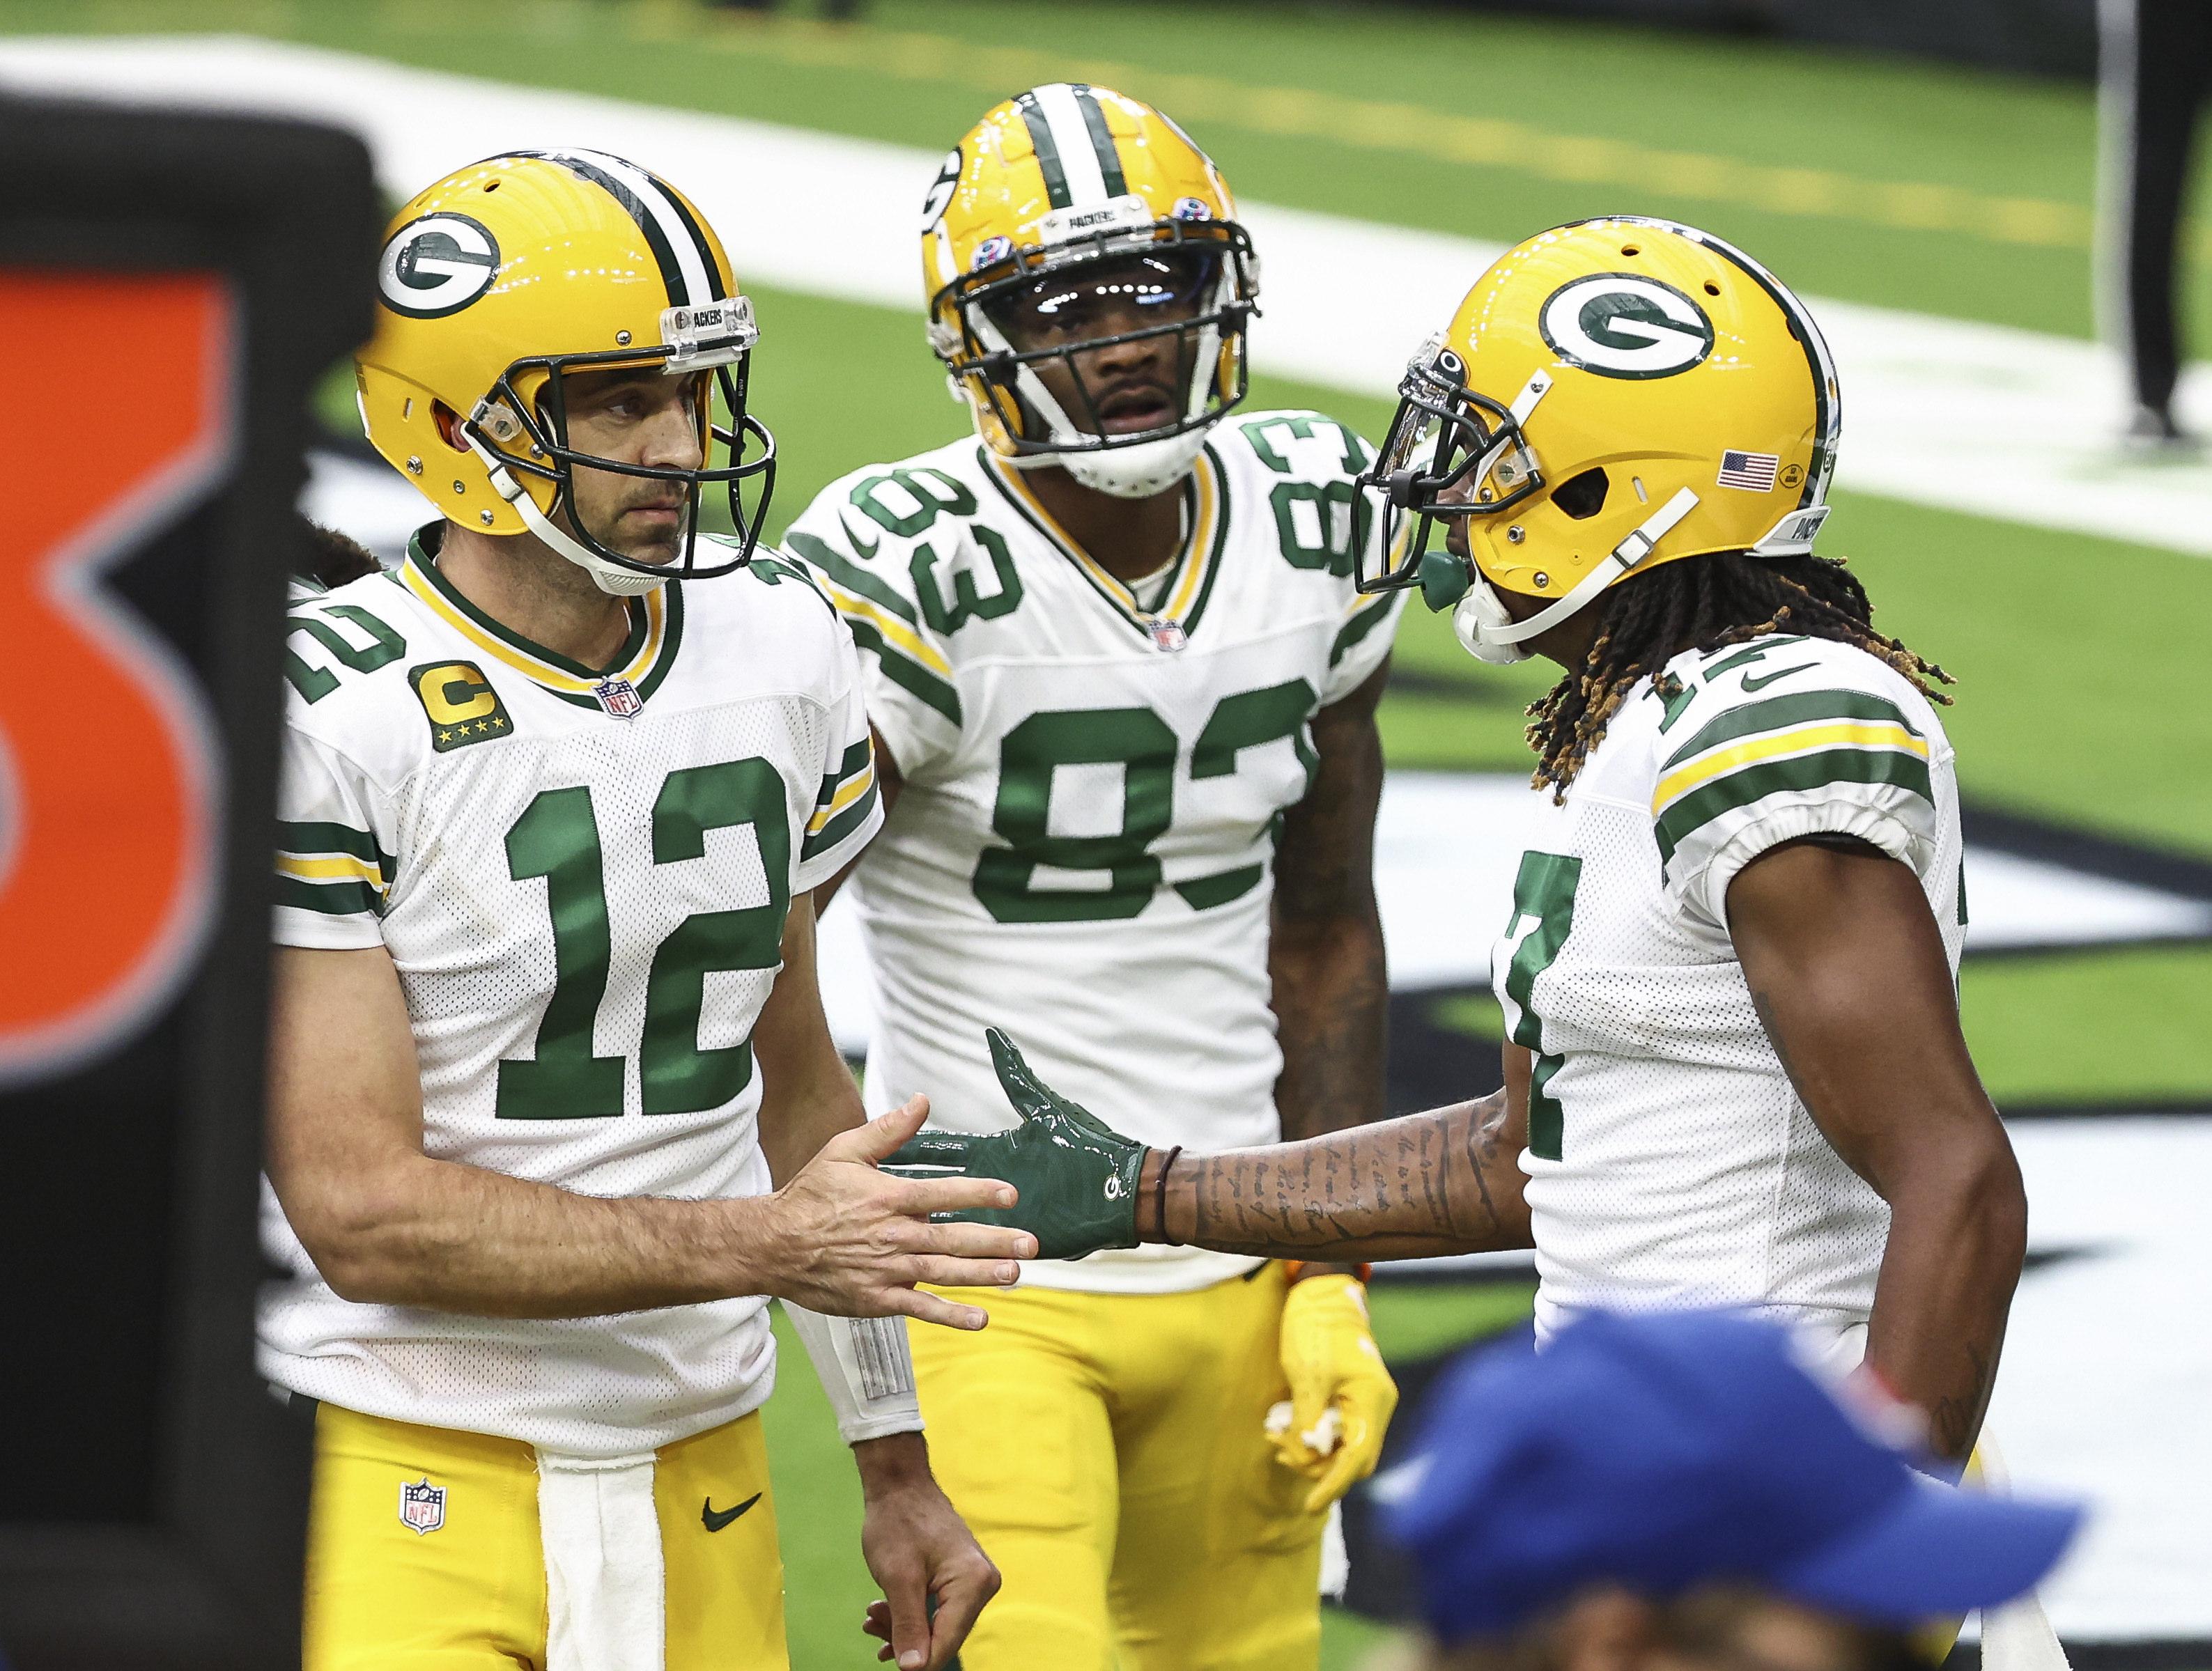 Ten Things We Learned from the Packers 35-20 Win Over the Texans